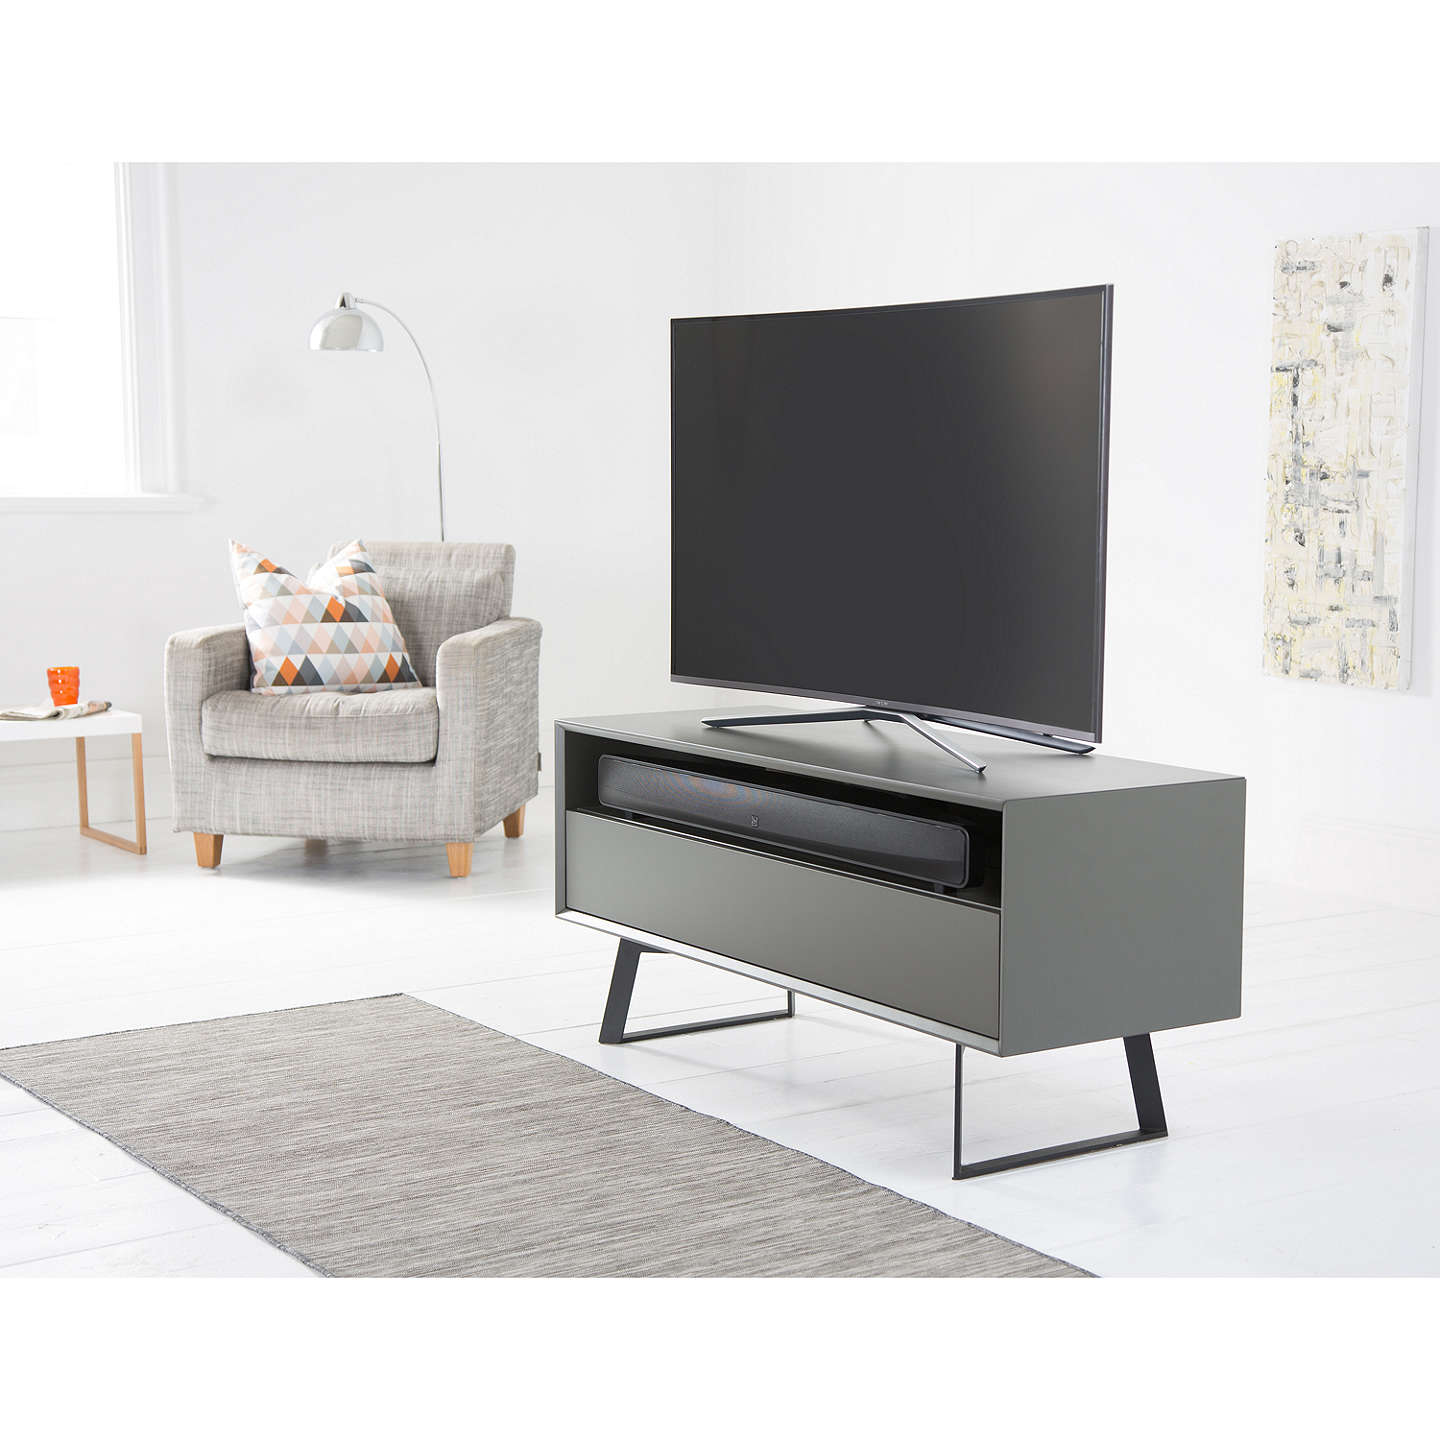 BuyQ Acoustics Media 4 (M4) Bluetooth NFC All-In-One Sound Bar, Black Online at johnlewis.com